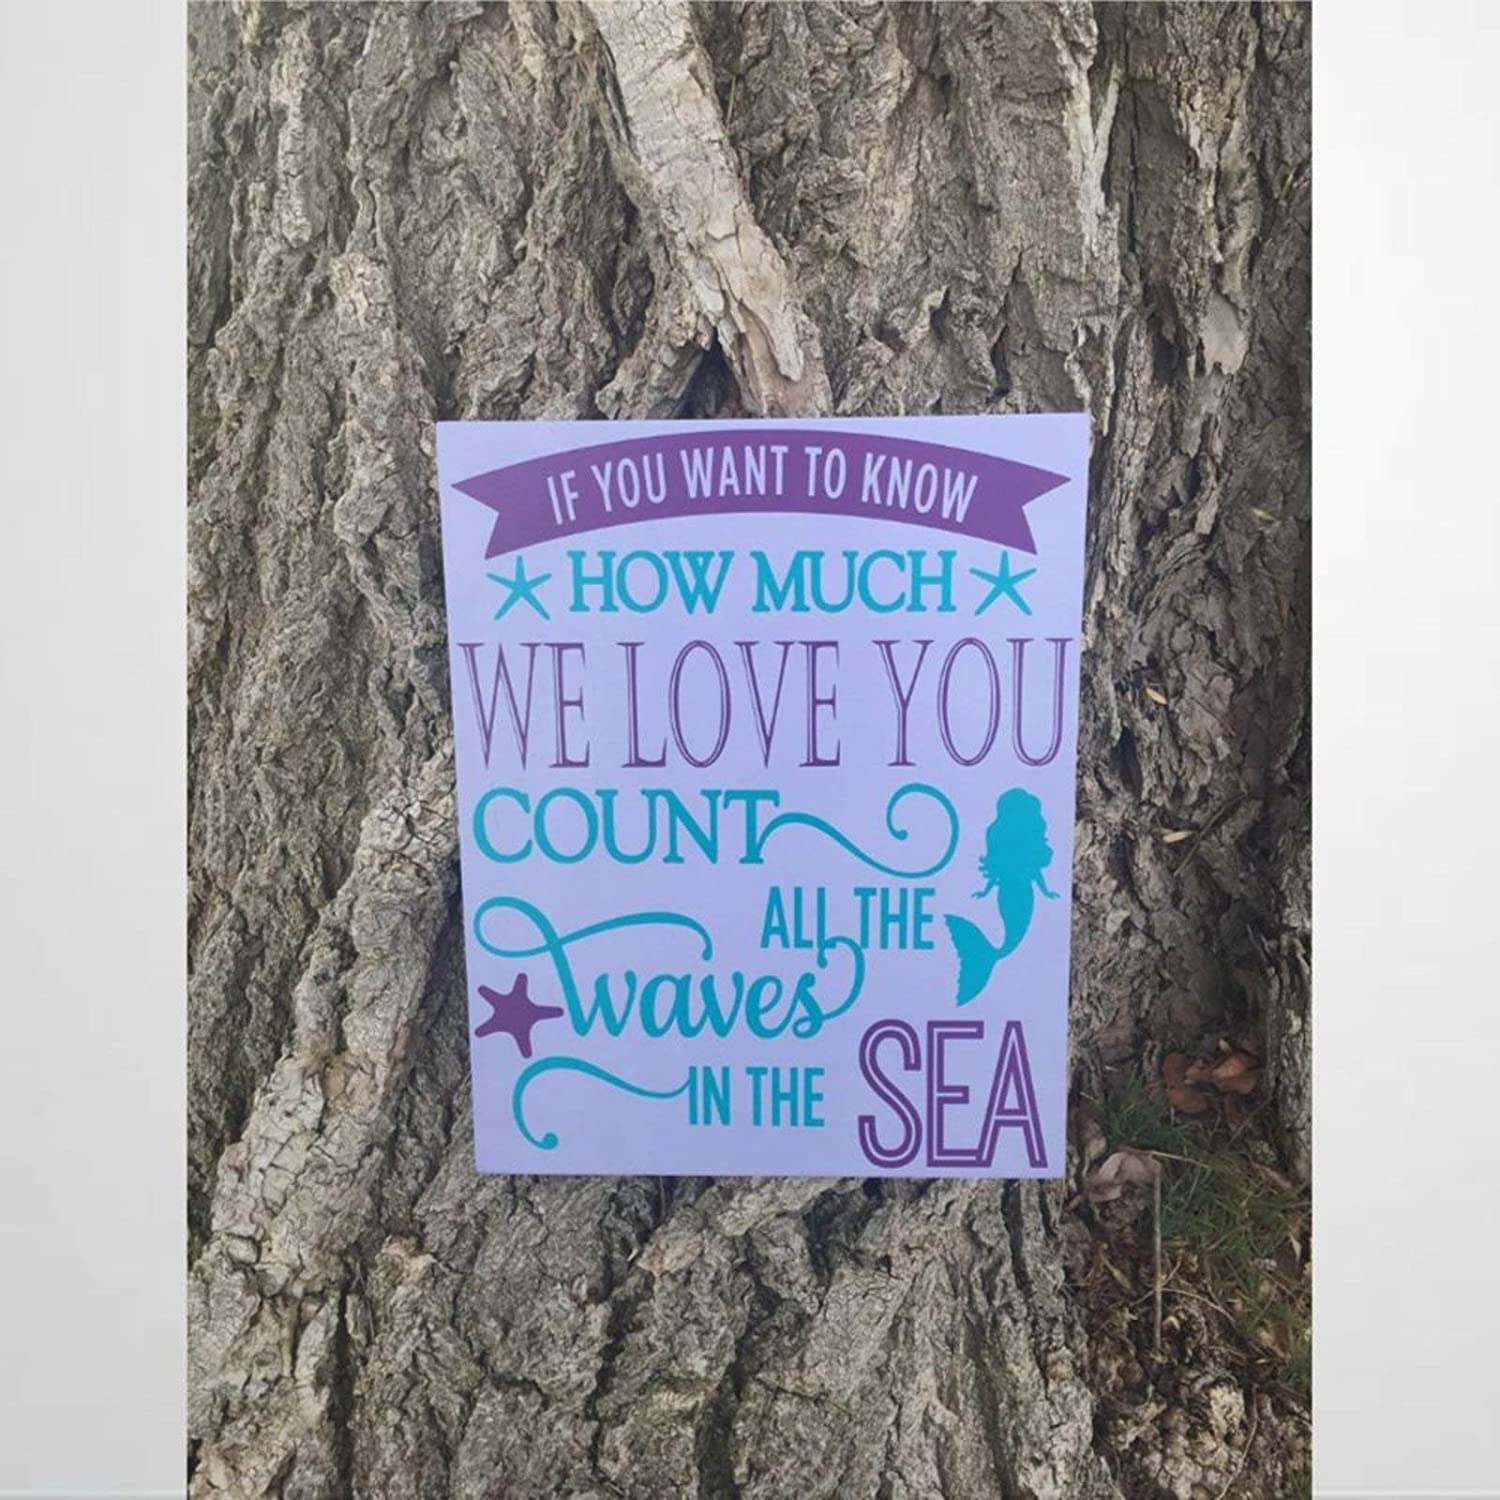 BYRON HOYLE Nautical Mermaid Wood Sign,Wooden Wall Hanging Art,Inspirational Farmhouse Wall Plaque,Rustic Home Decor for Living Room,Nursery,Bedroom,Porch,Gallery Wall